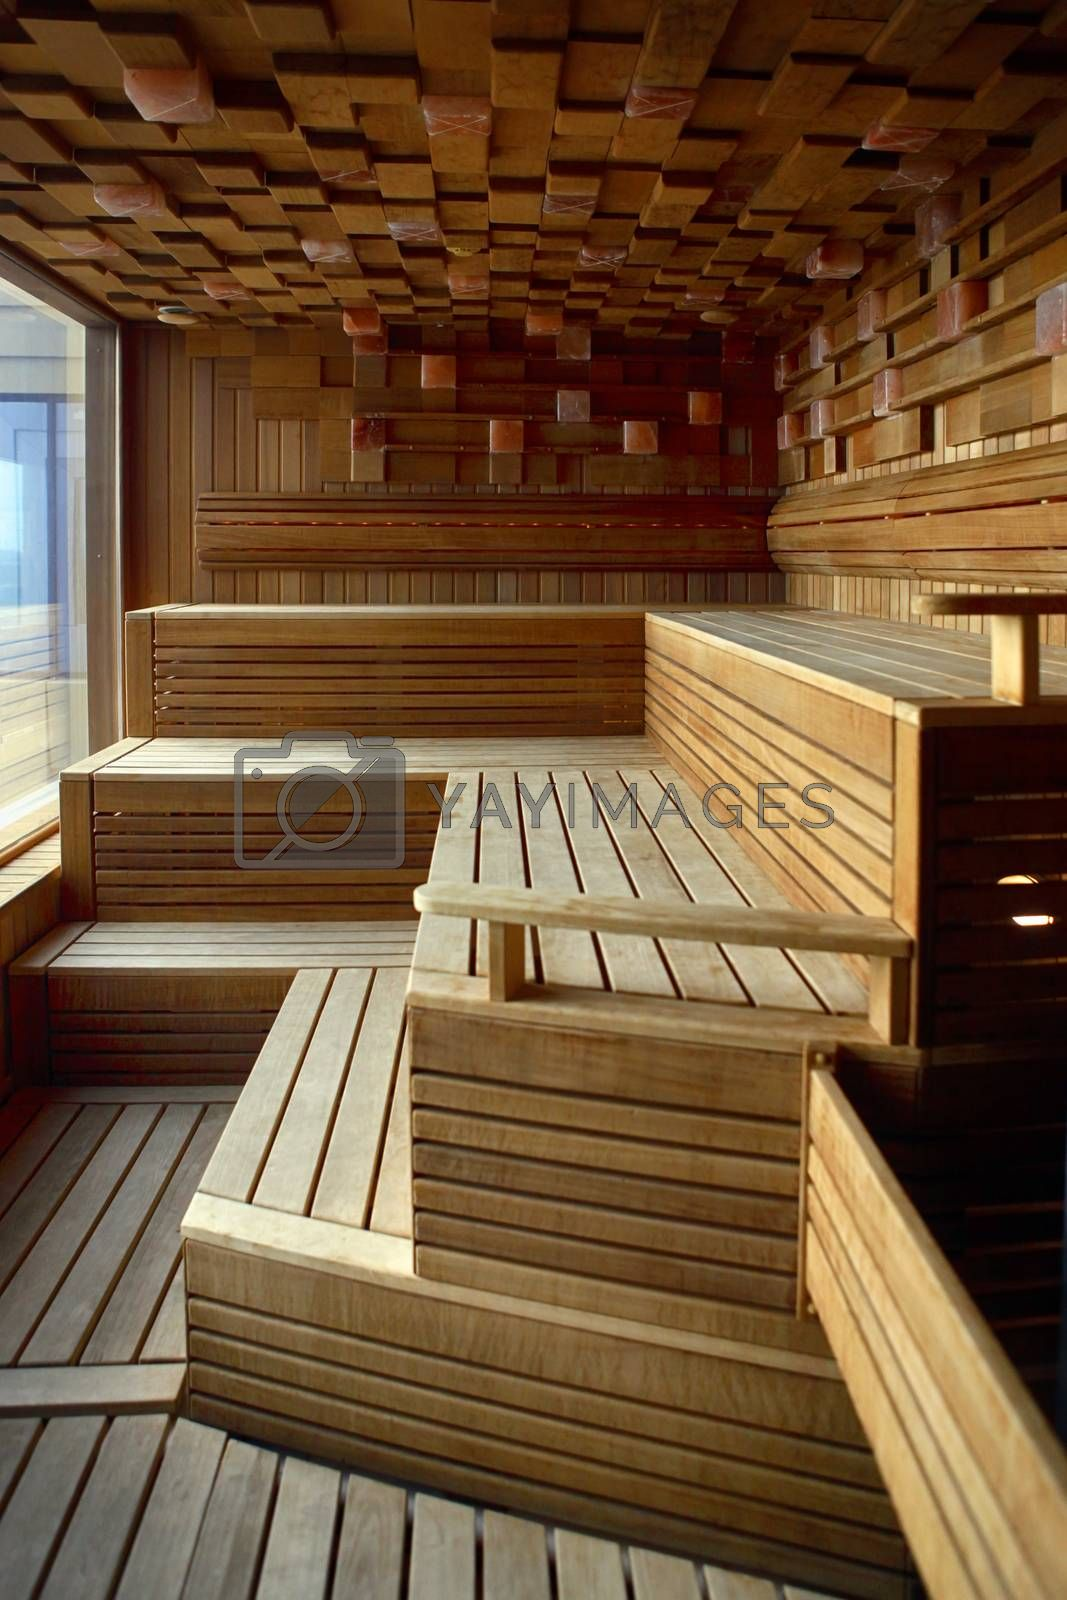 Royalty free image of Interior of Finnish sauna by friday